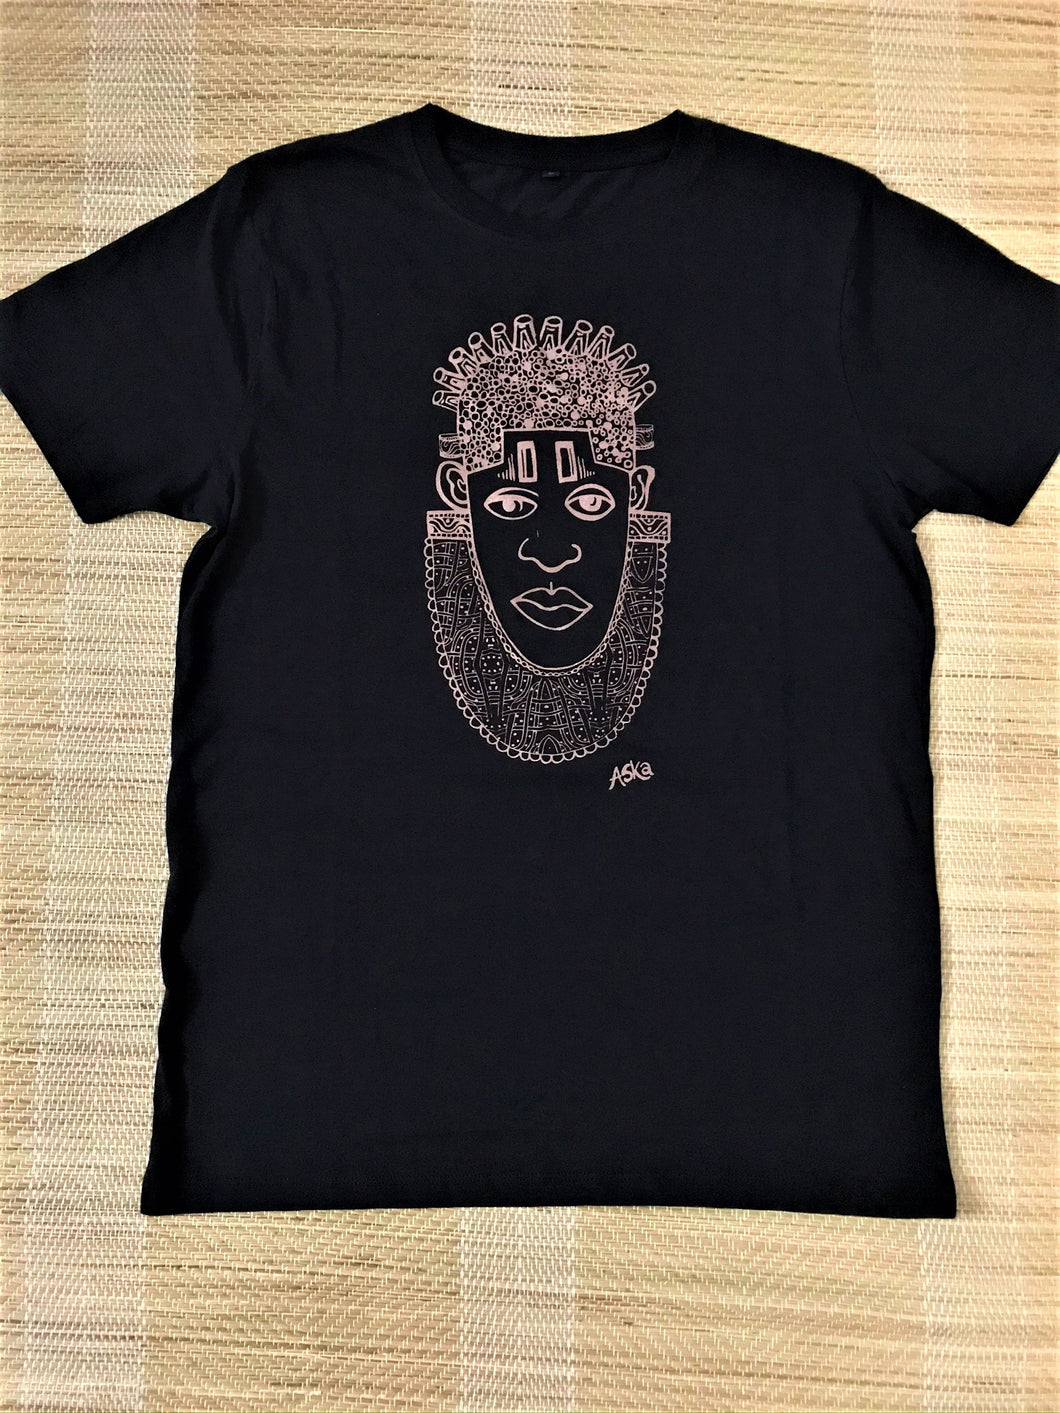 IDIA ART EARTH POSITIVE TEE- ROSEGOLD ON BLACK TEE